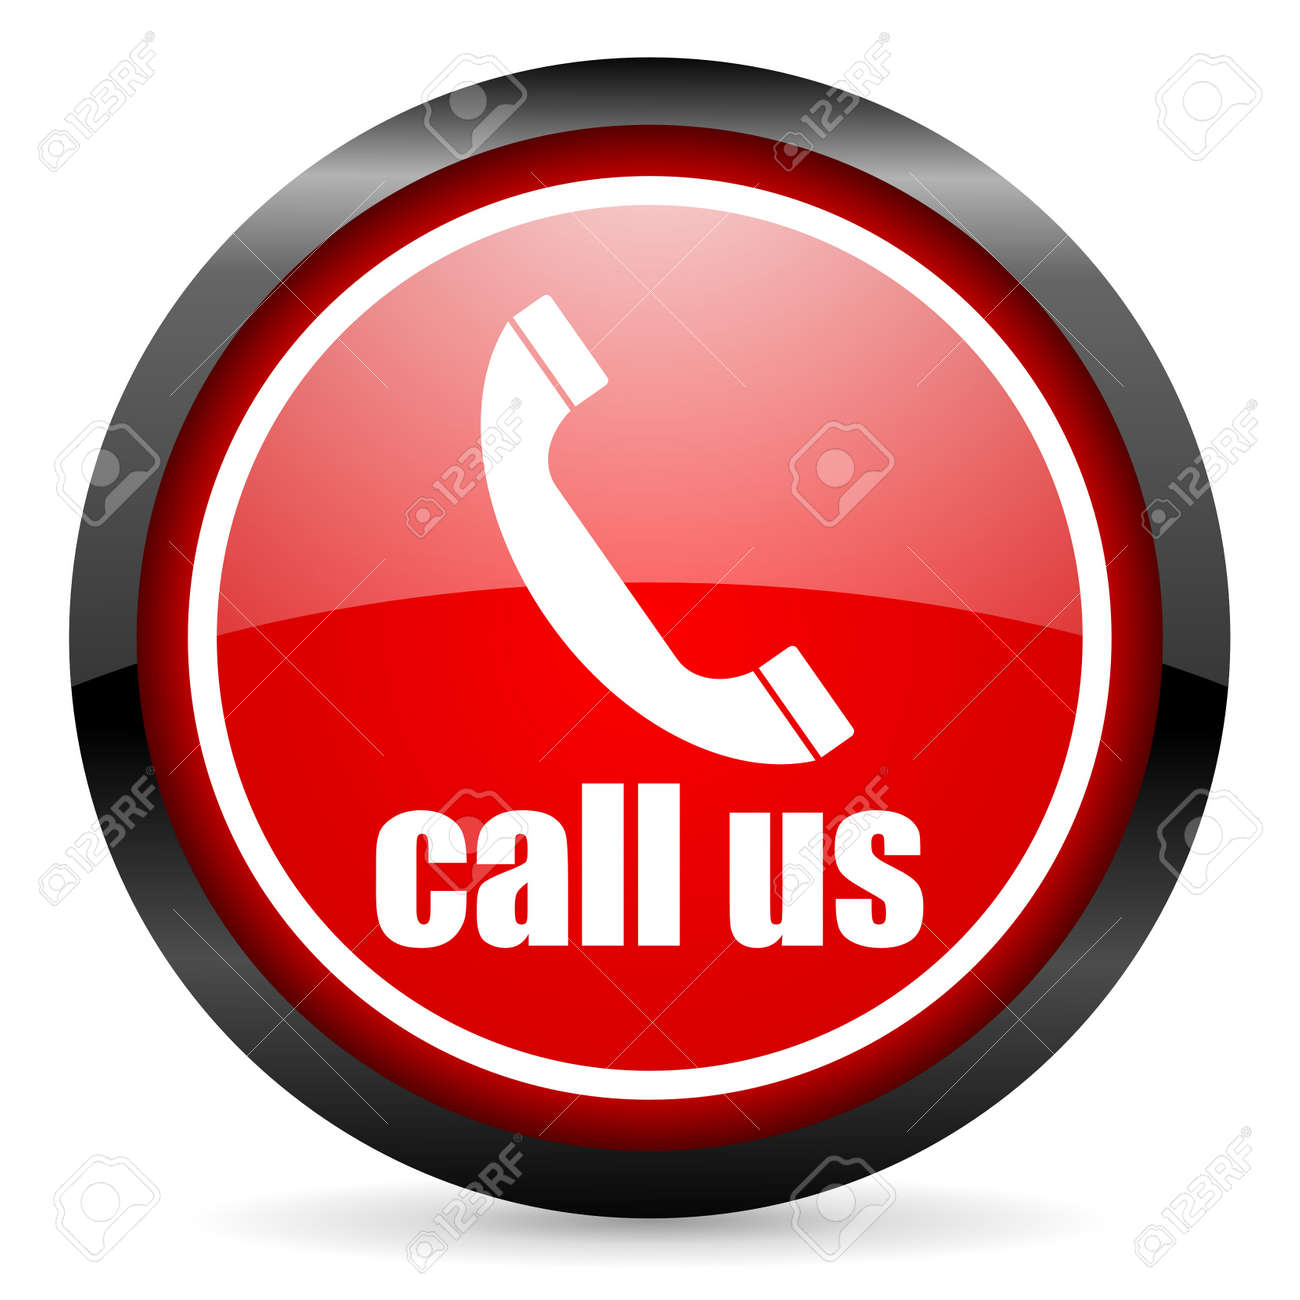 call us round red glossy icon on white background Stock Photo - 16506135